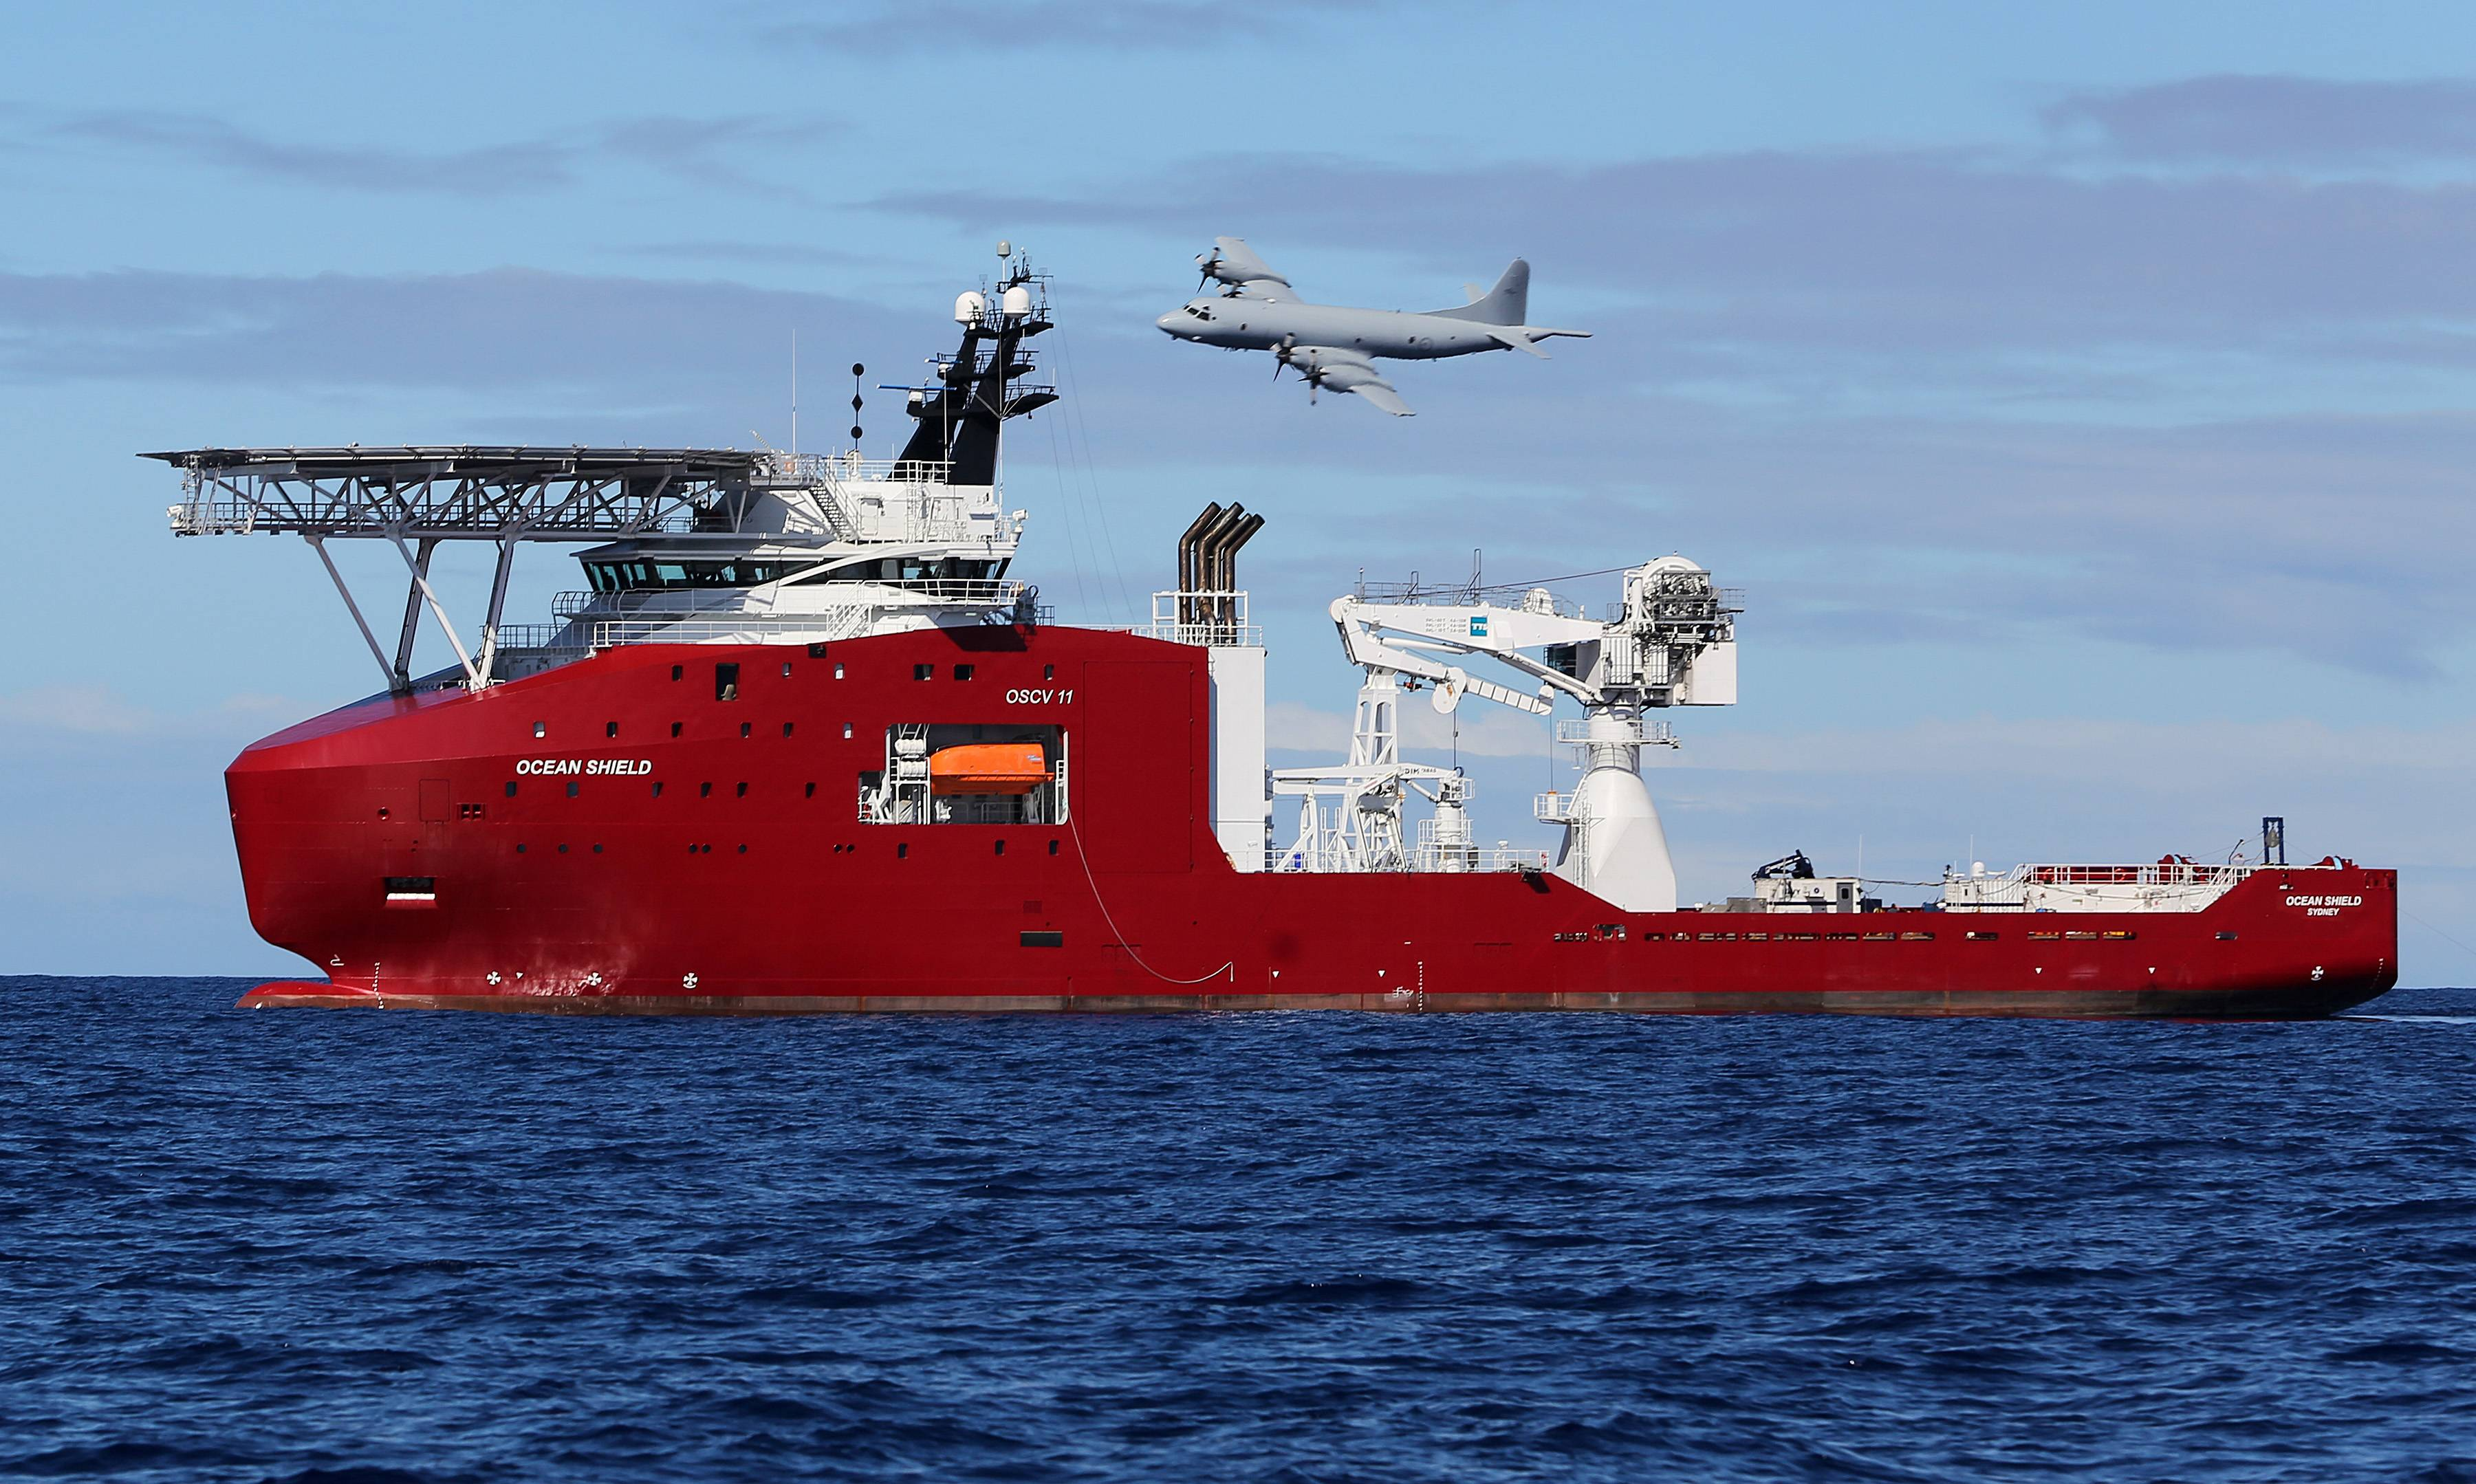 The ship searching for the missing Malaysian jet has detected two more underwater signals that may be emanating from the aircraft's black boxes, and the Australian official in charge of the search expressed hope Wednesday that the plane's wreckage will soon be found.